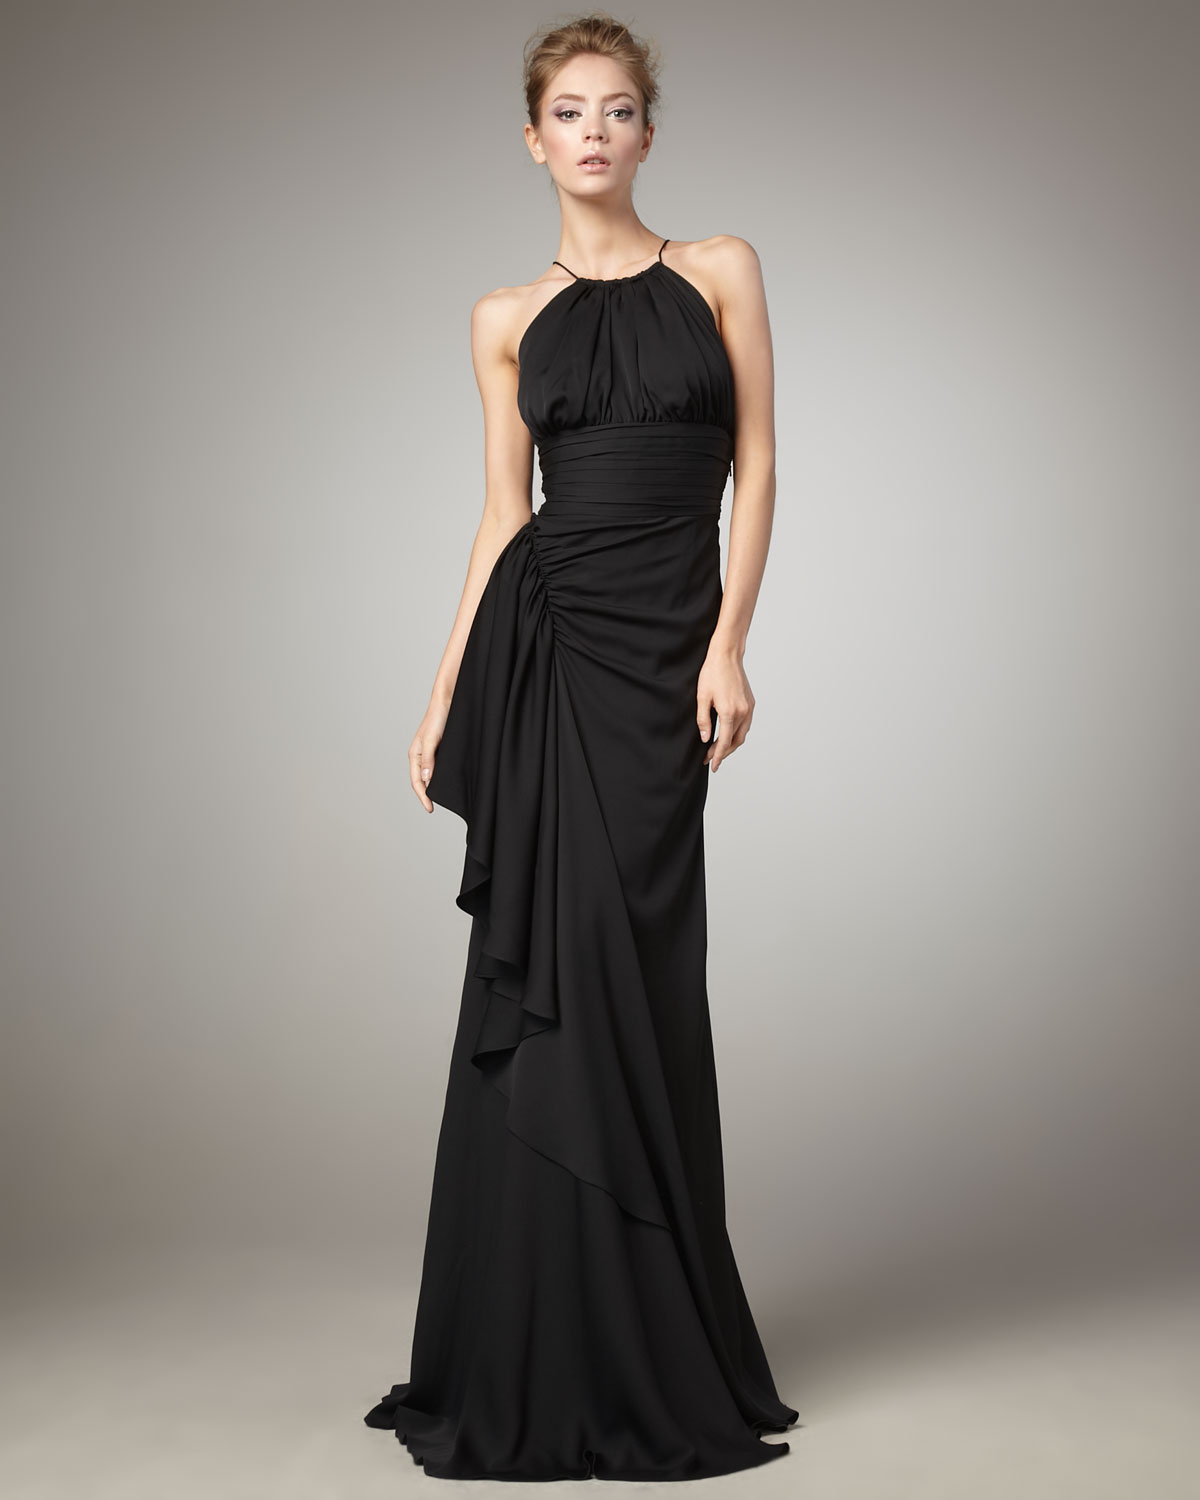 Robert rodriguez frances halter gown black in black lyst gallery previously sold at neiman marcus ombrellifo Choice Image